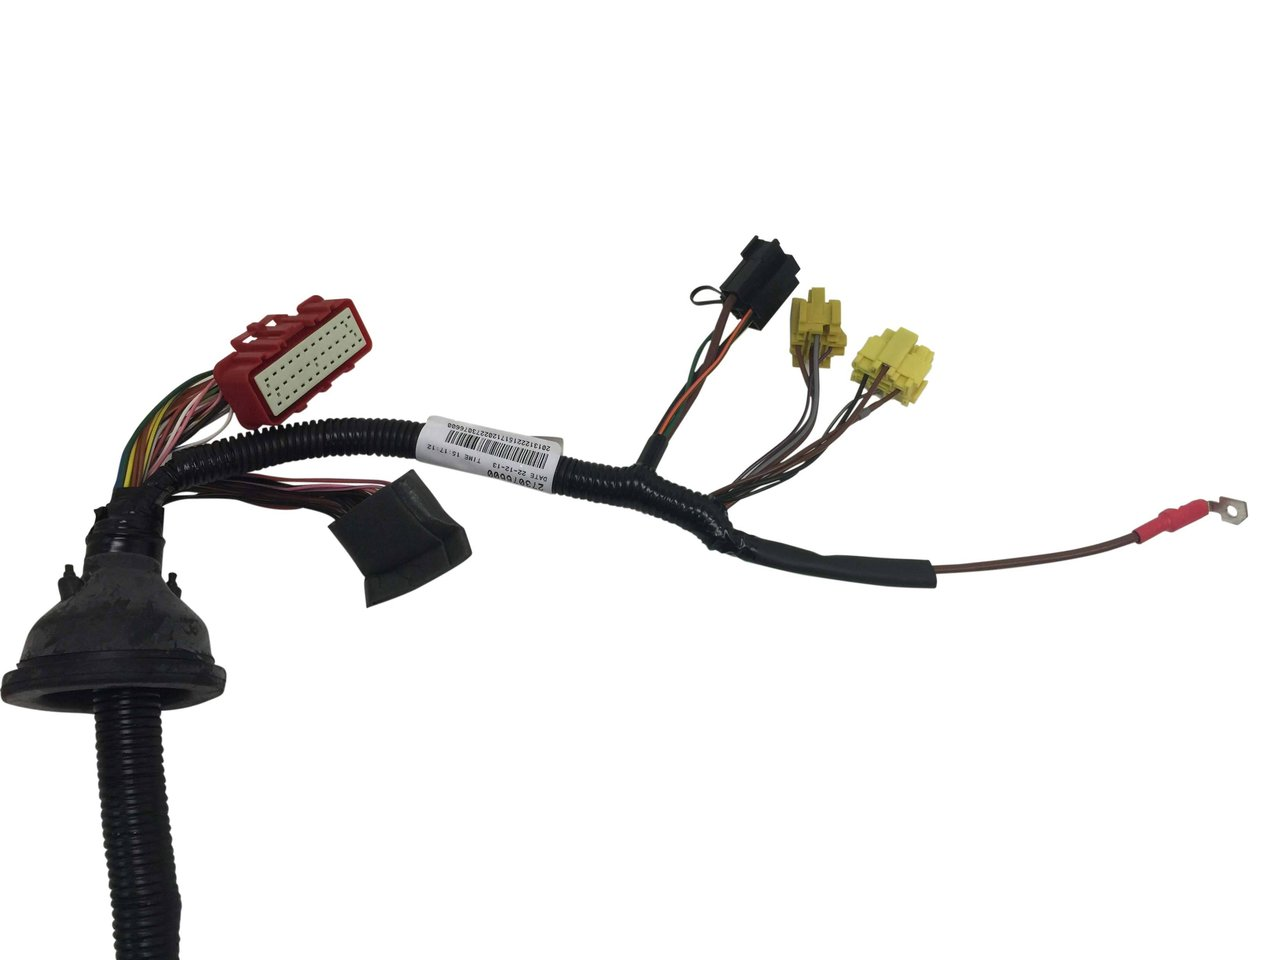 YSB106901__3 genuine engine wiring harness for defender td5 2 5l 5 cyl turbo td5 engine wiring harness at aneh.co